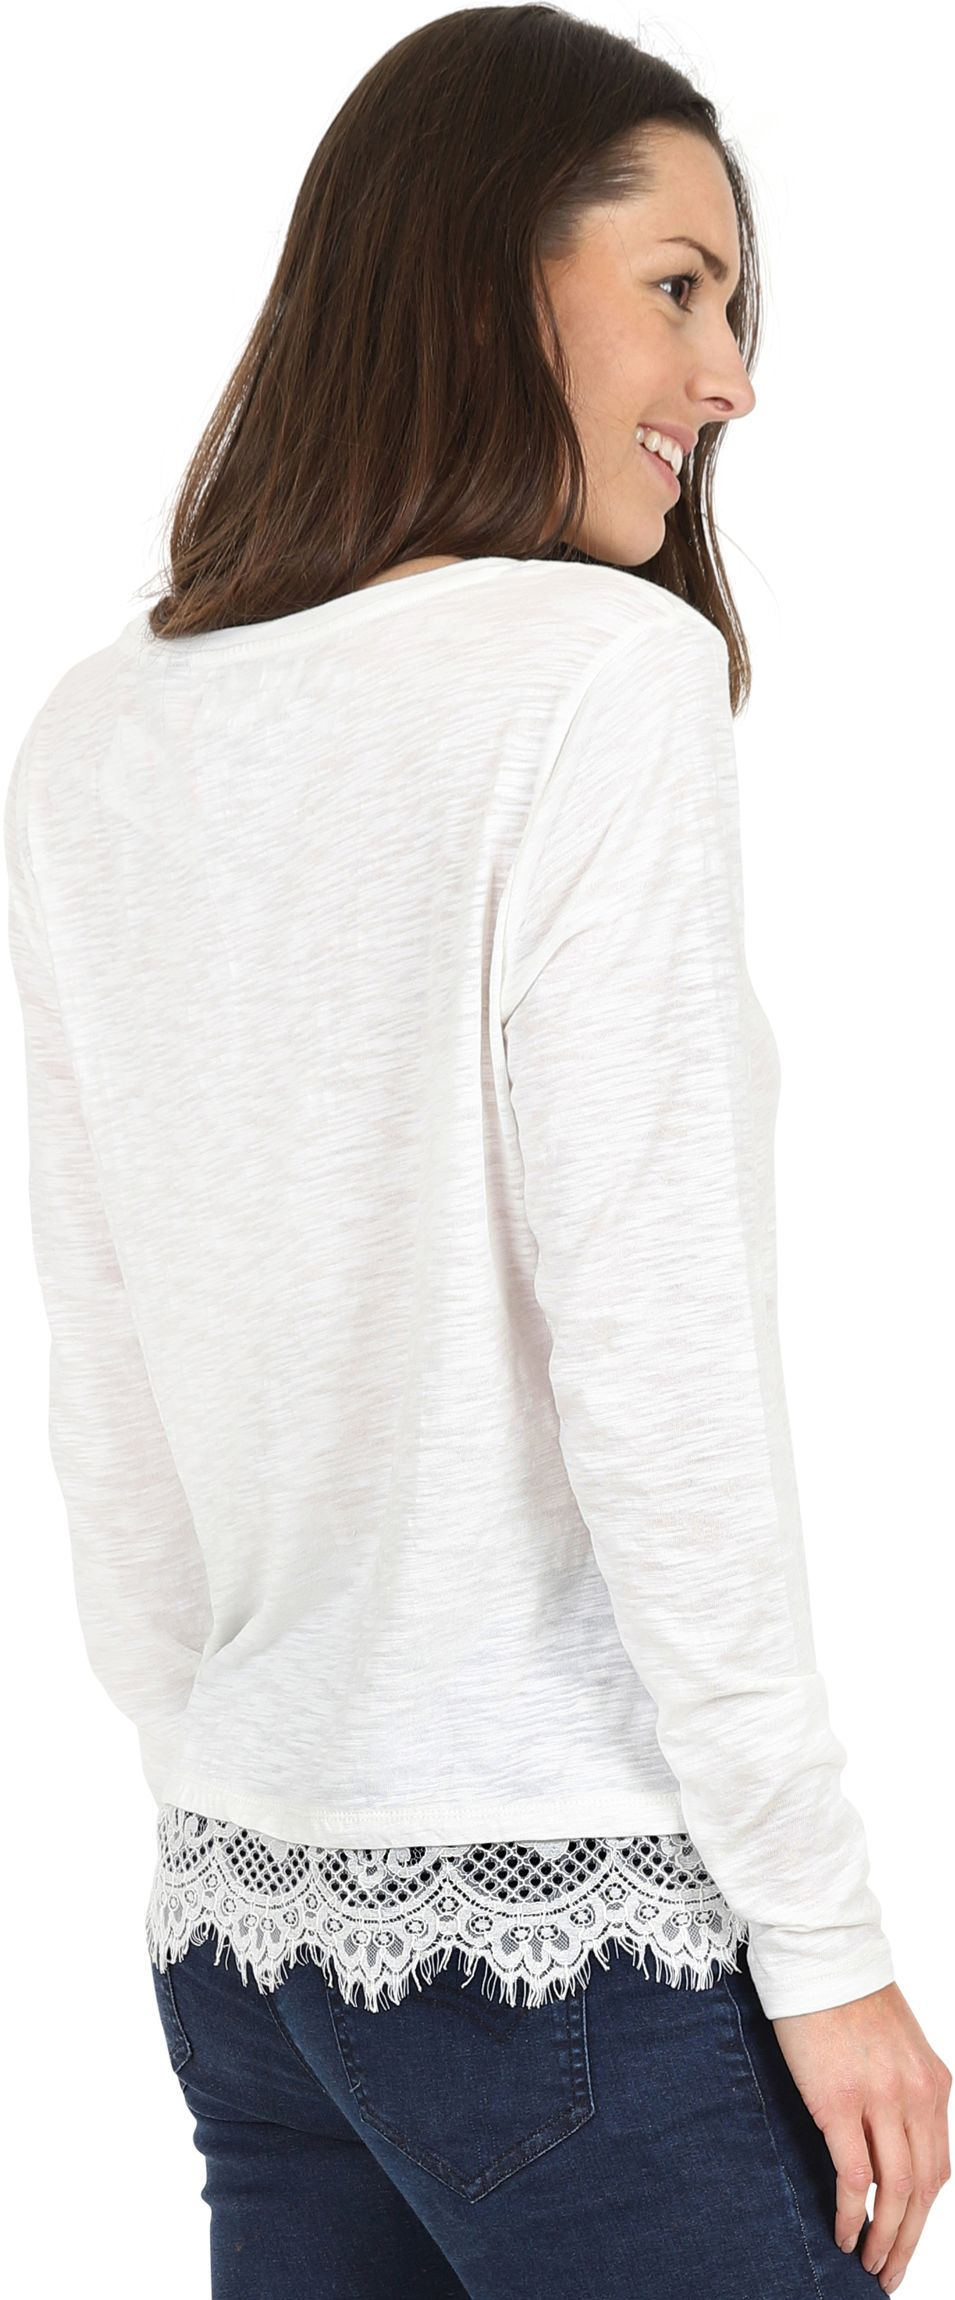 Superdry Ashby Lace Hem Long Sleeve Top